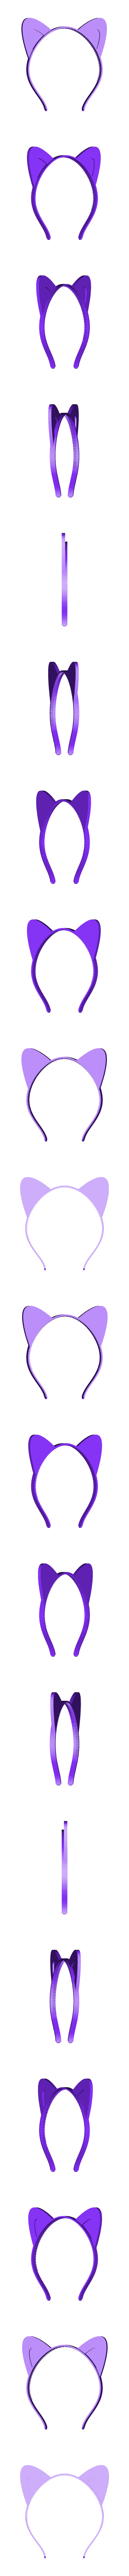 ears-pointed1.stl Download free STL file Animal ears headband, customizable • 3D printer design, arpruss